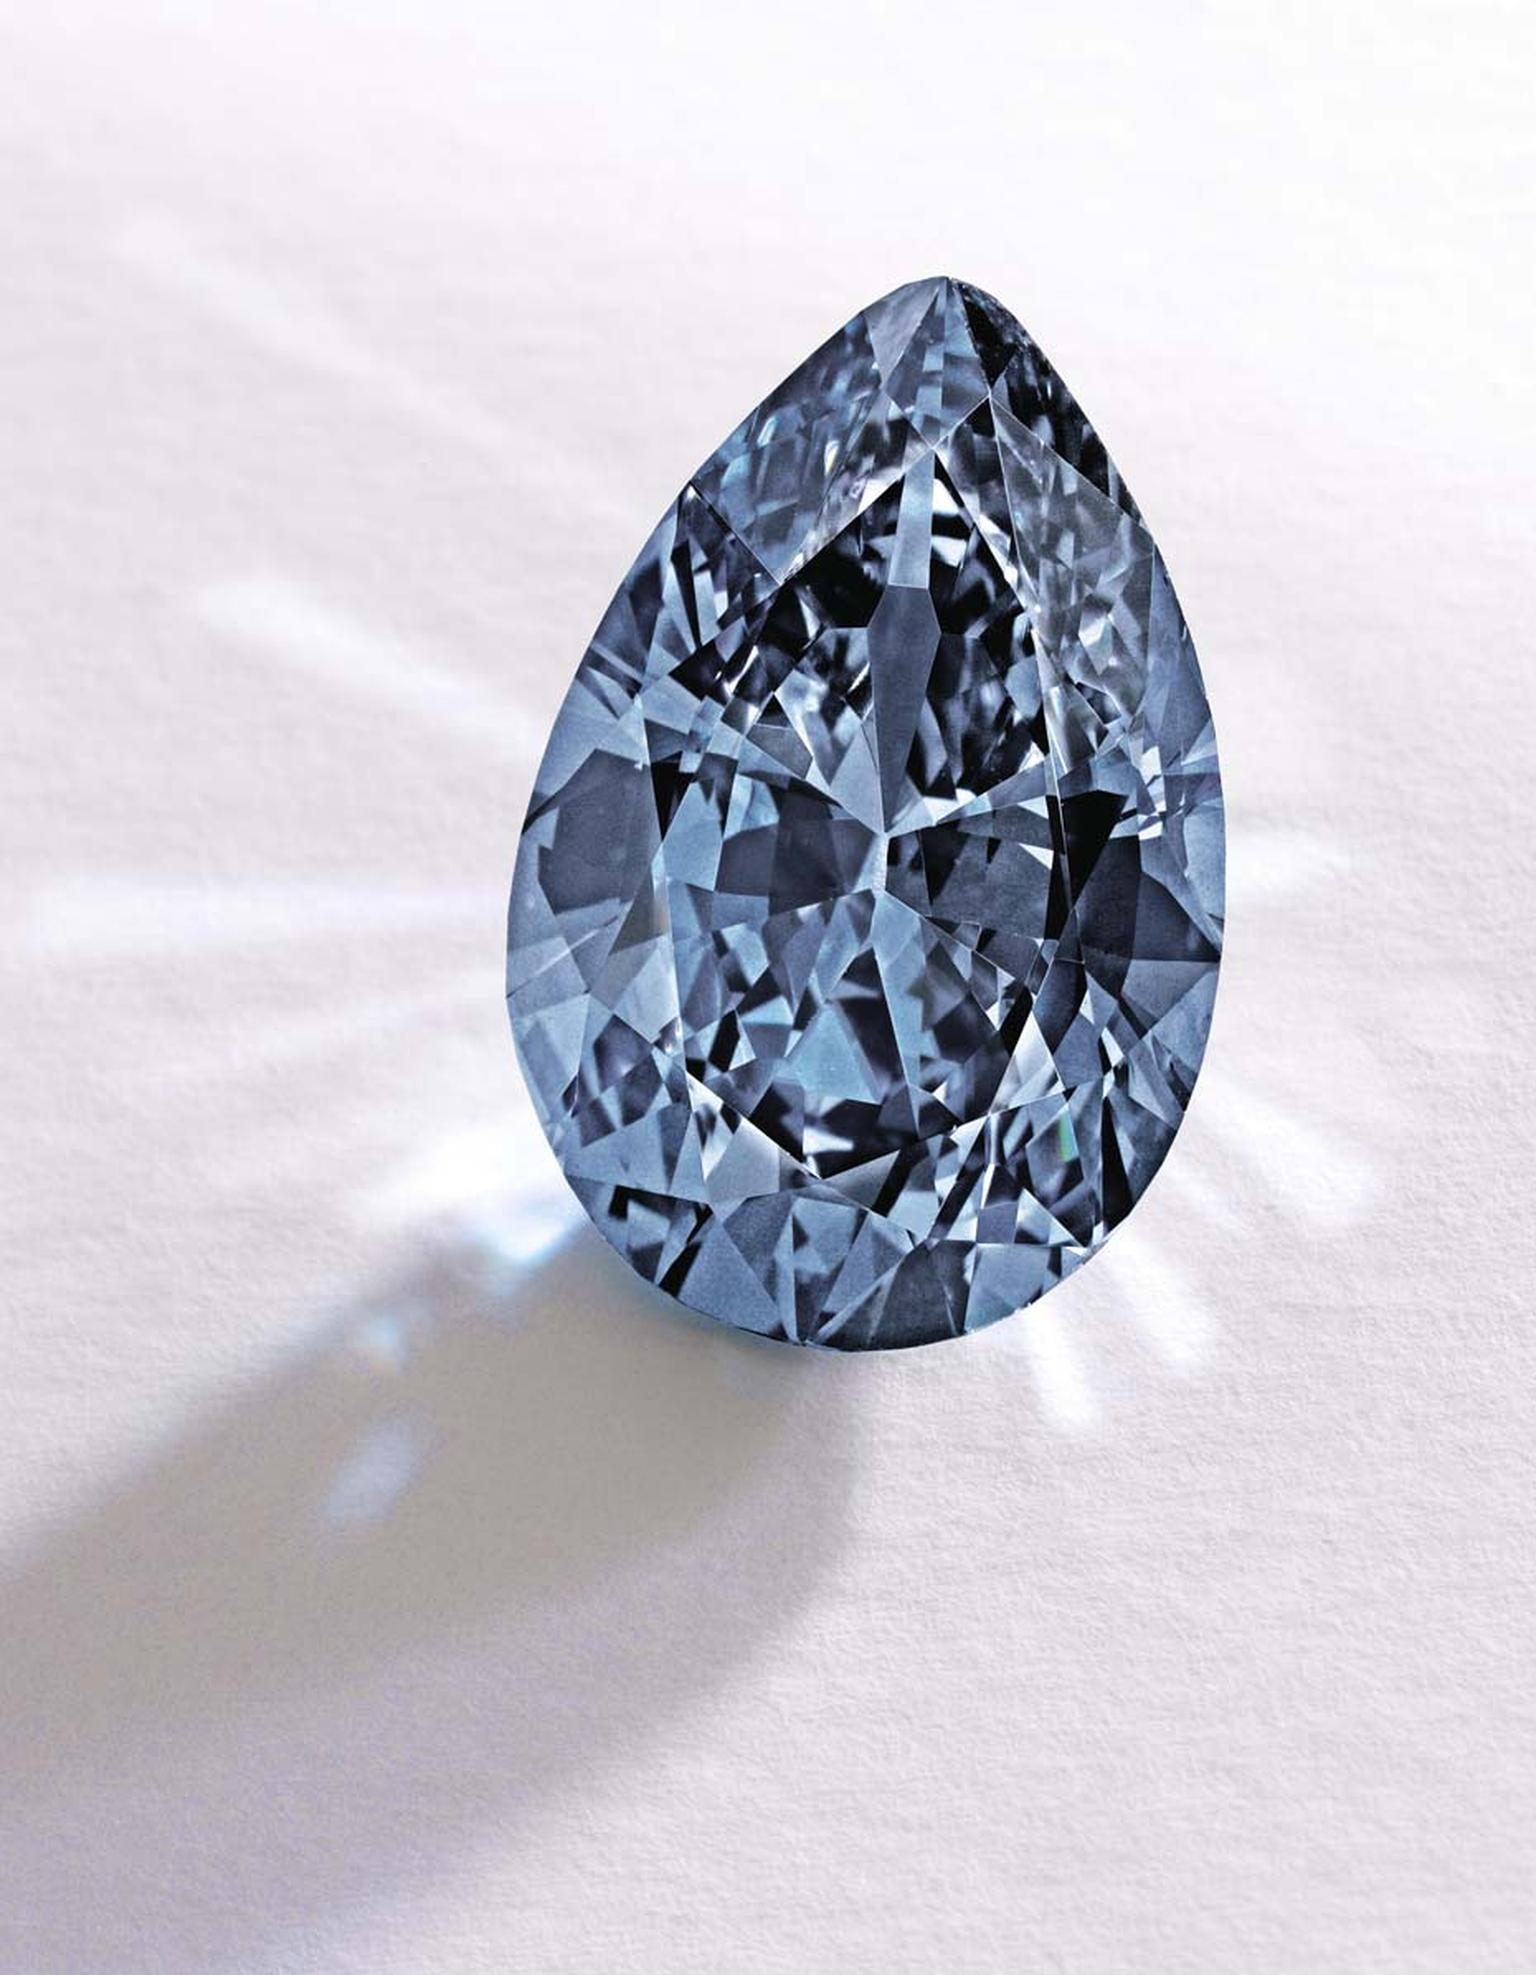 This rare 9.74ct Fancy Vivid blue diamond, known as the Zoe diamond, was sold for $32.6m by Sotheby's in November 2014.